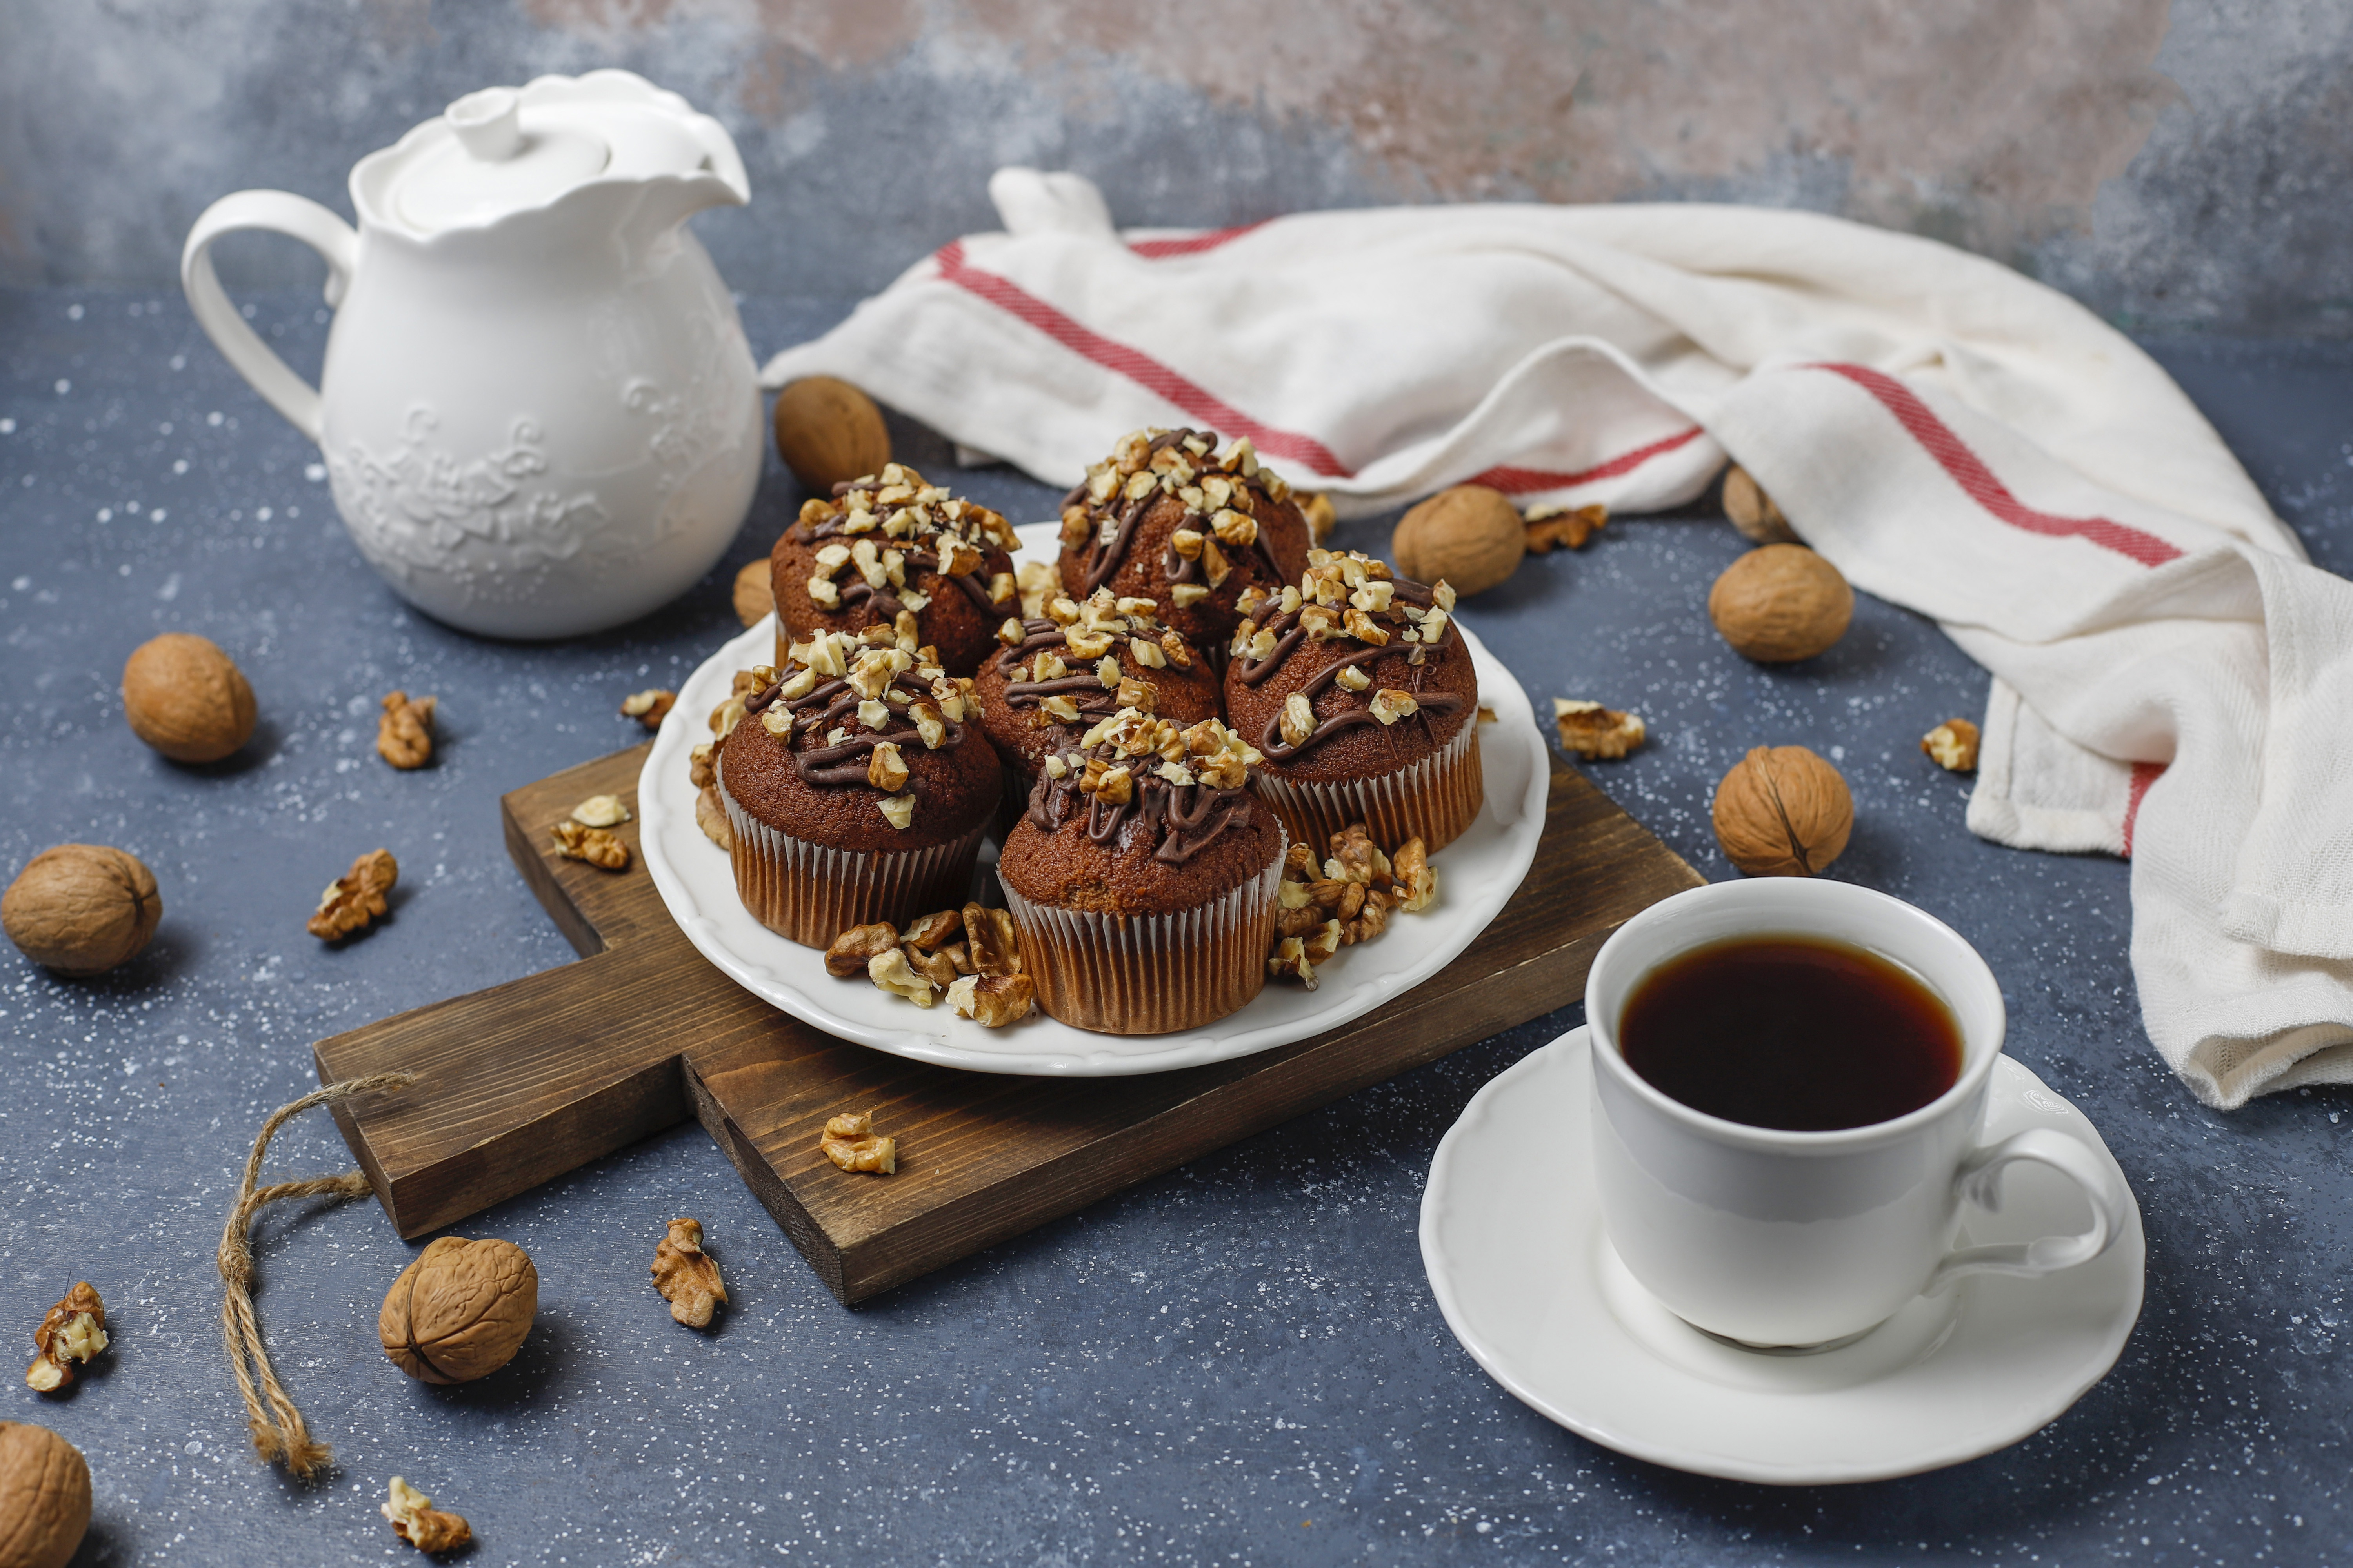 Coffee Cup Cupcake Drink Still Life 6000x3999